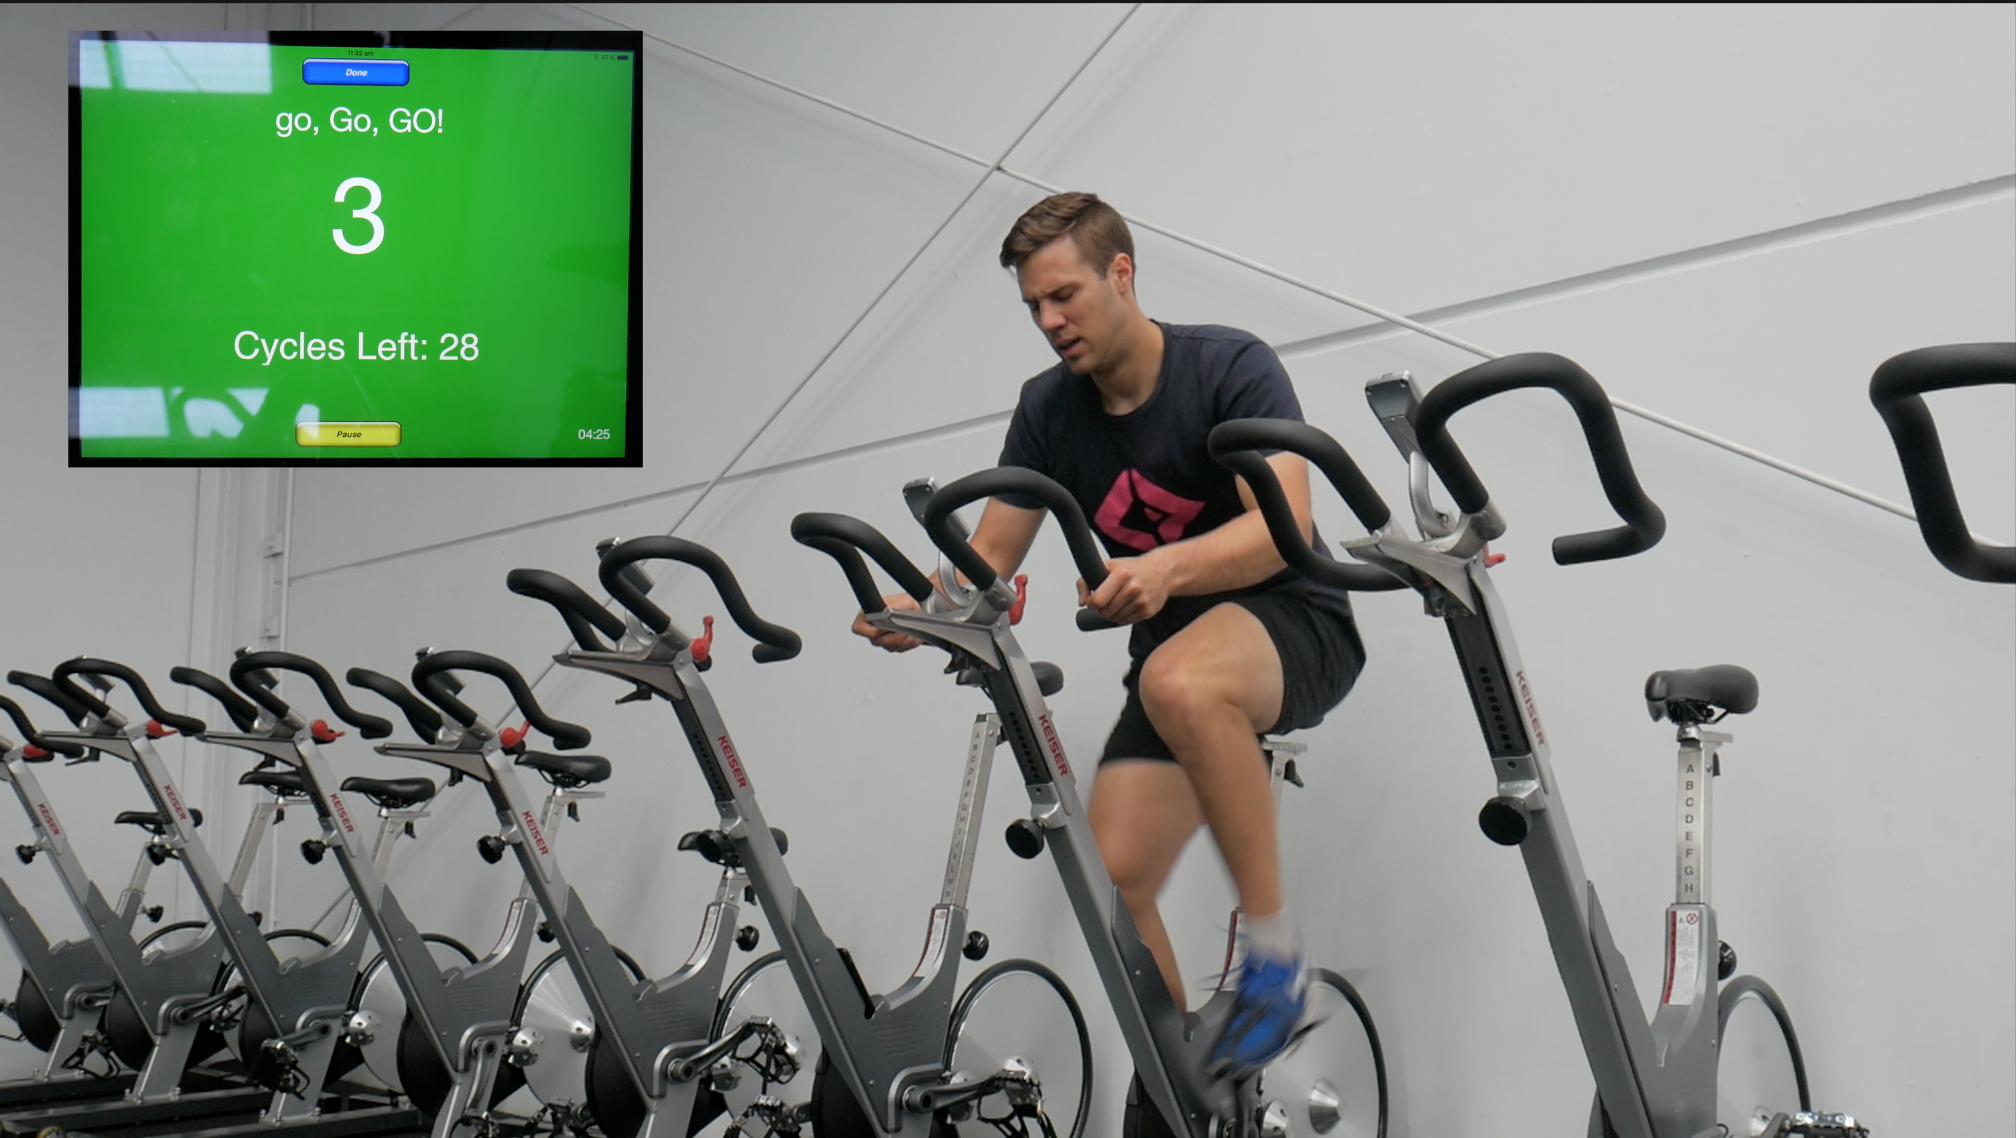 The World's Best HIIT Workout: How To do 8:12 Intervals on a Spin Bike